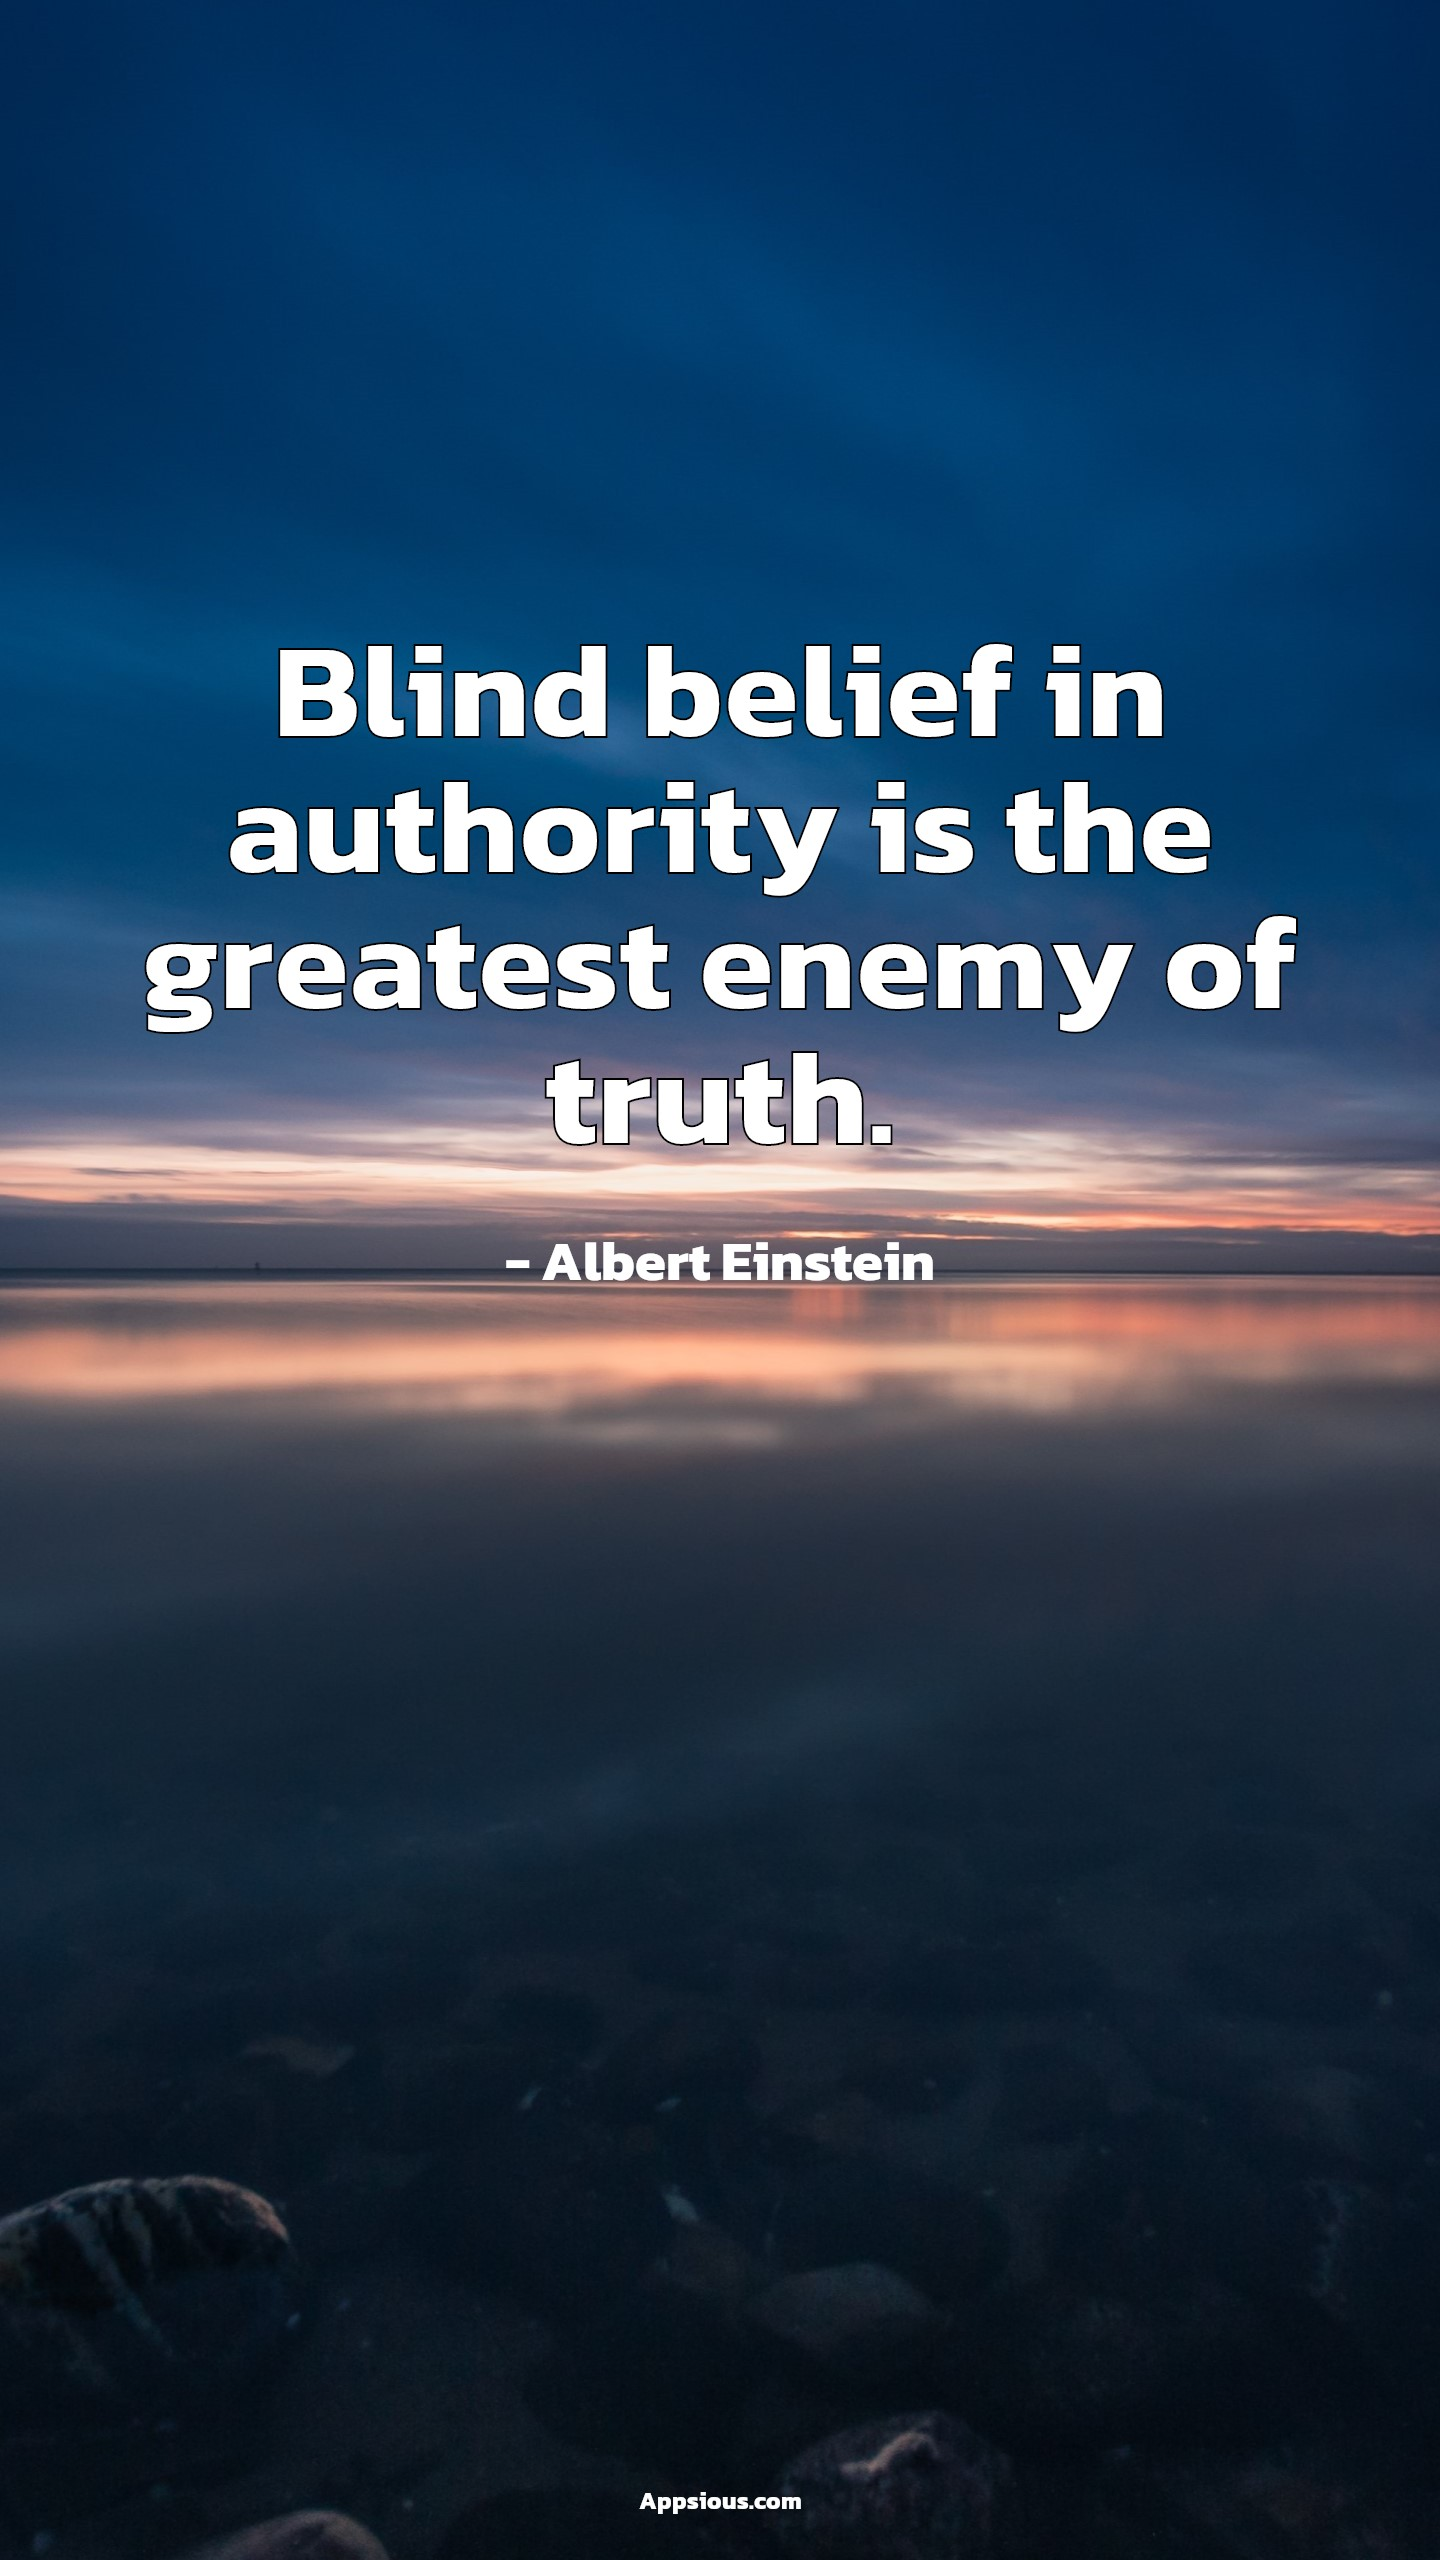 Blind belief in authority is the greatest enemy of truth.